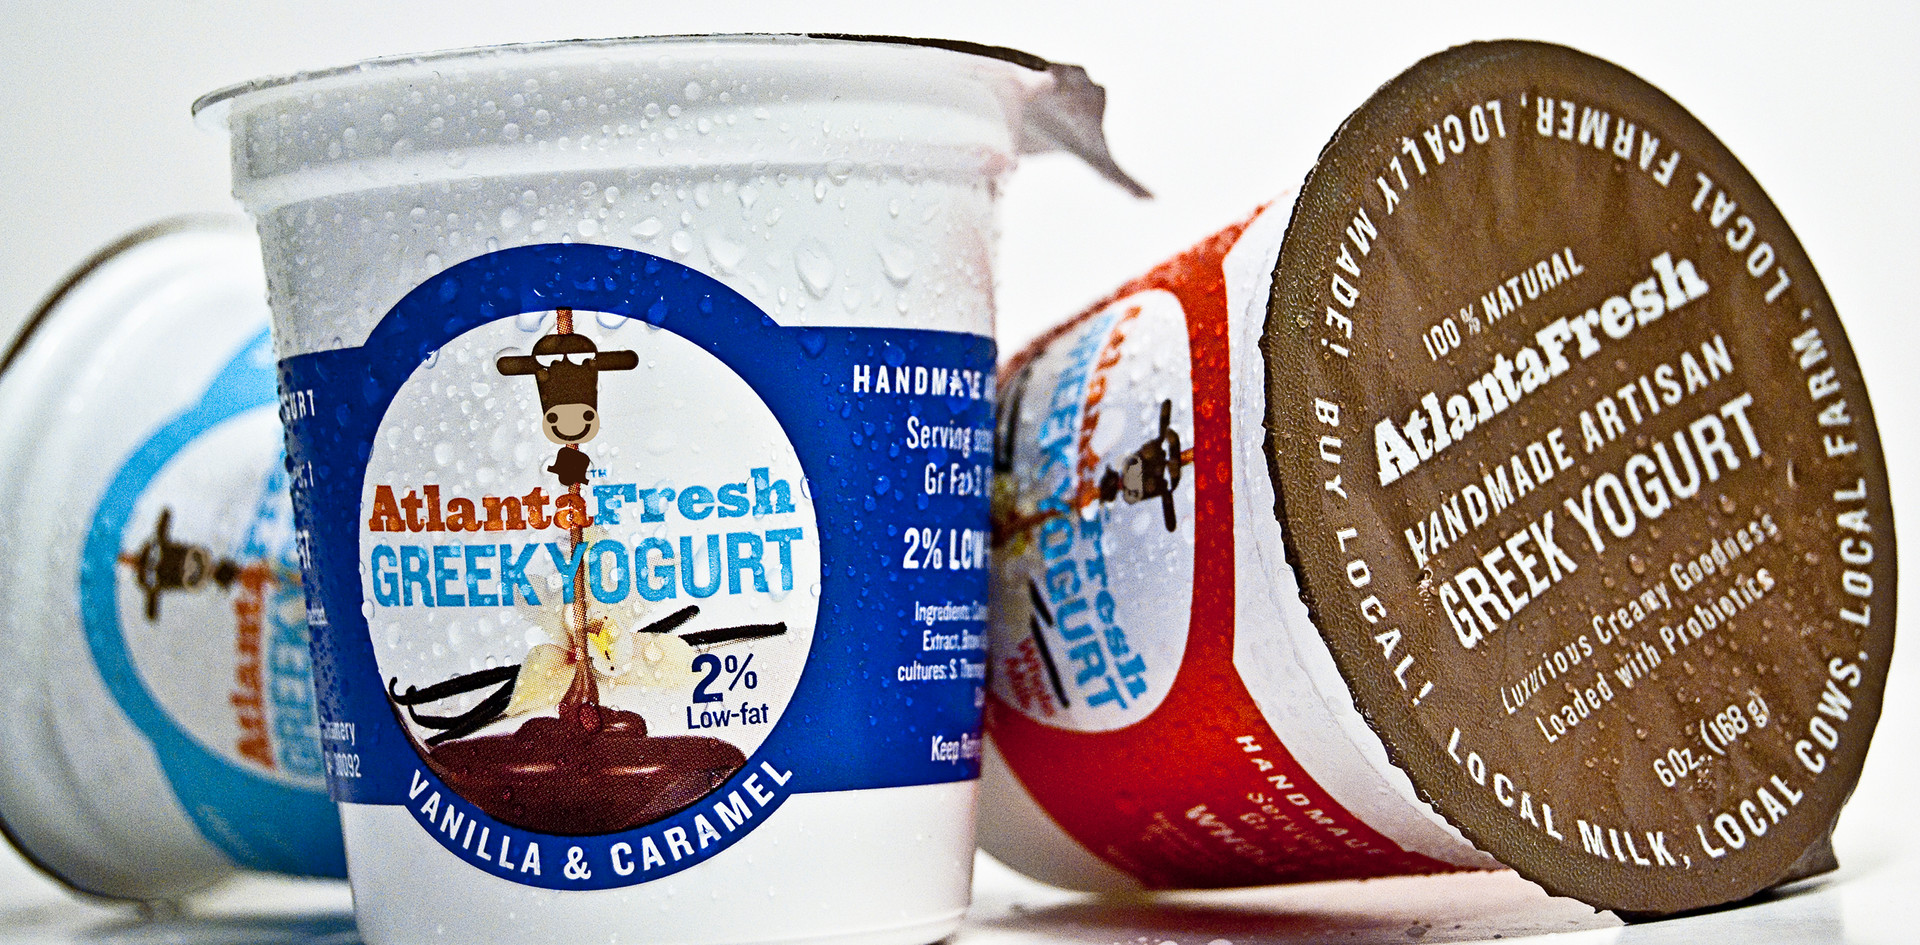 "The original package design of AtlantaFresh used a style that connected with its small batch handmade roots. The label was hand applied and even rubber stamped with the date the batch was made. Therefore much research went into substrates, coatings inks and adhesives to insure the unprecedented yogurt label would hold up in cold and wet conditions. Although the diecut ""cigar band"" signature shape was far more expensive than a flexo printed plastic carton, the client agreed that for such an expensive premium product, an appropriate presentation was needed."